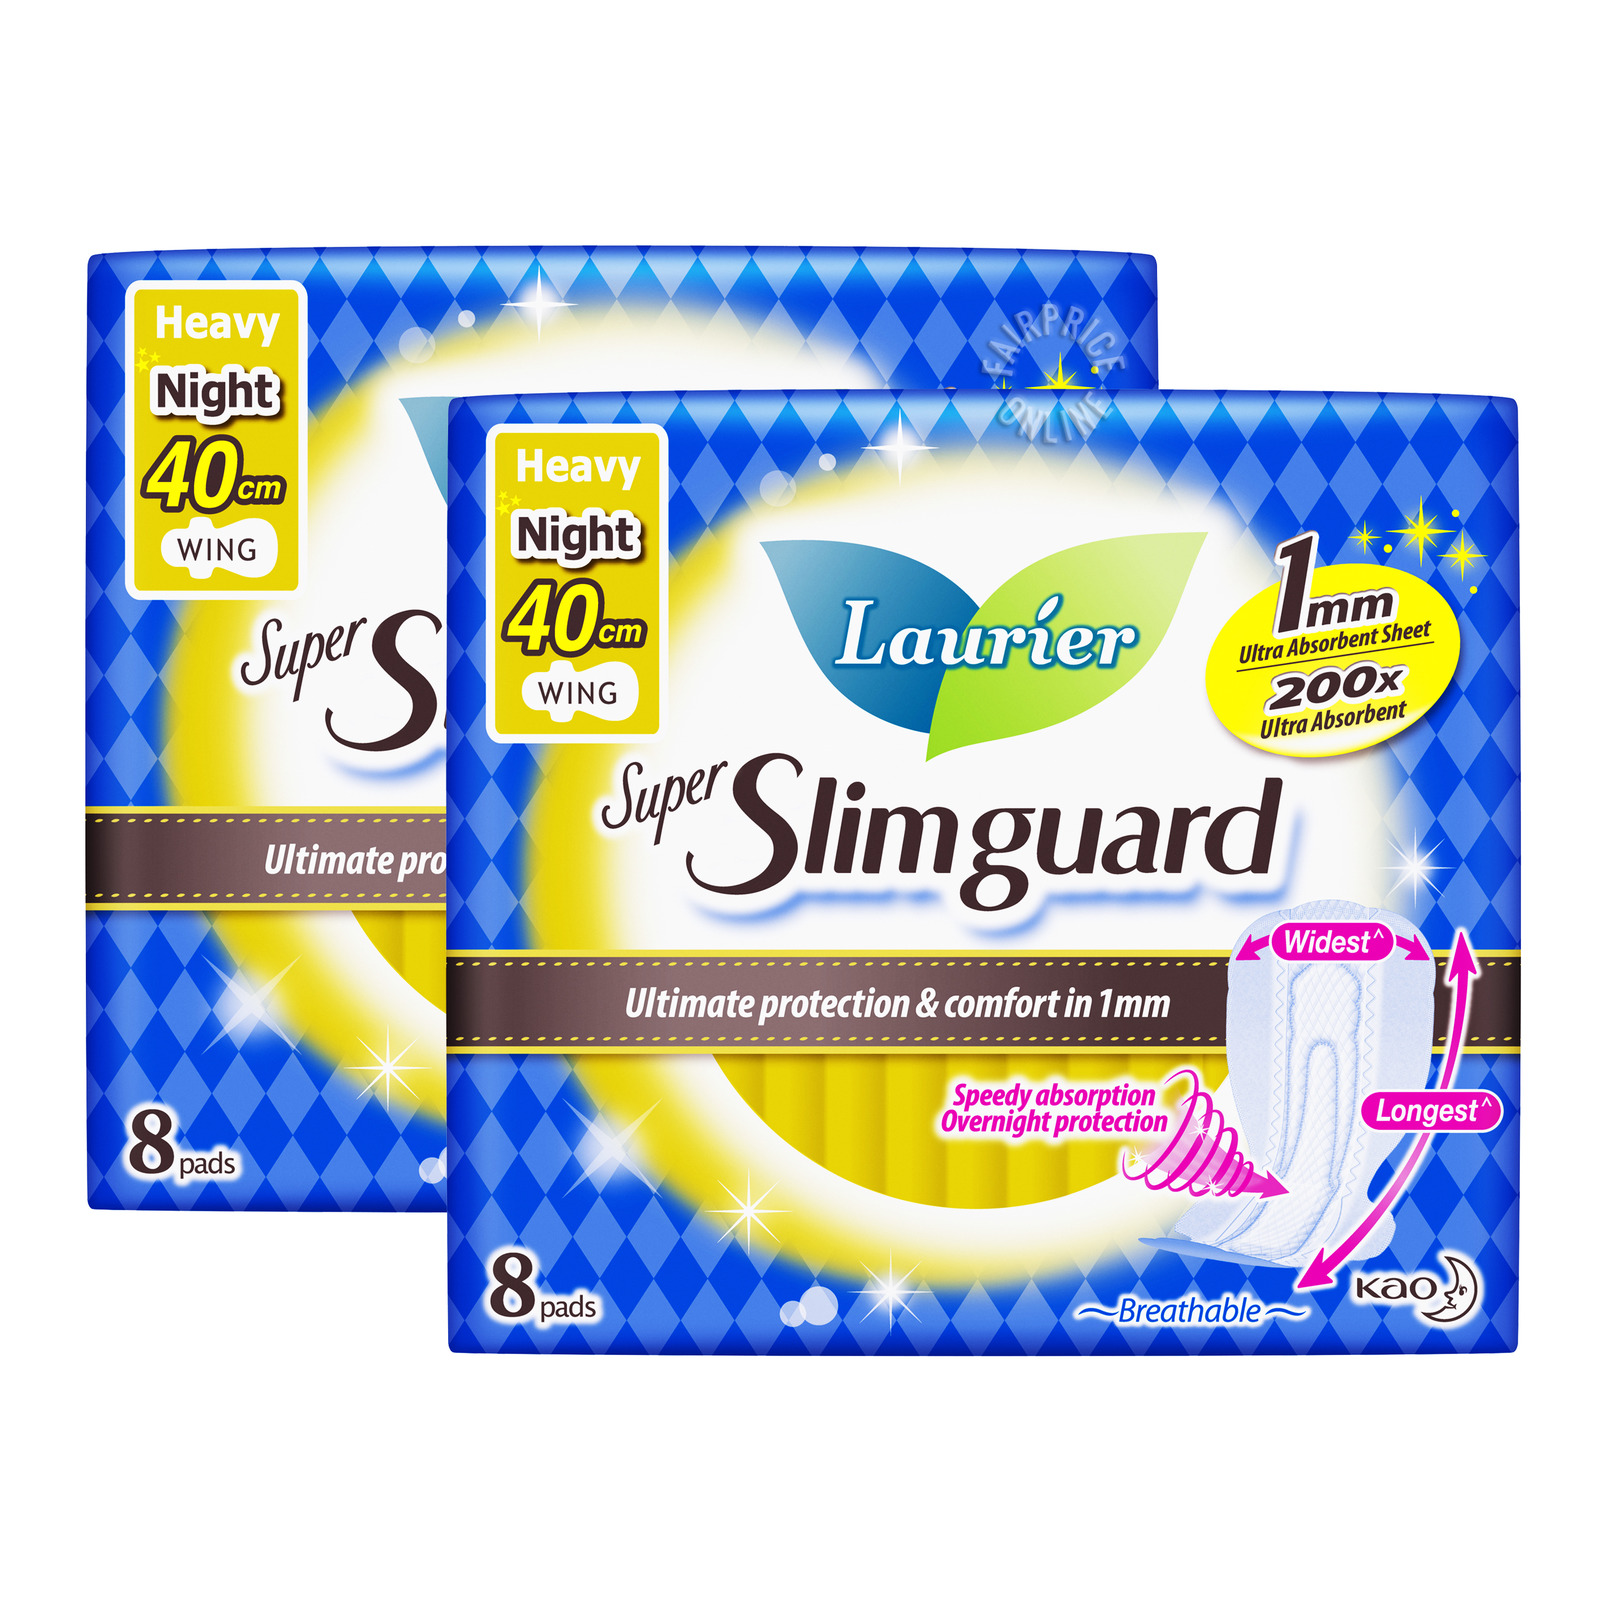 Laurier Super Slimguard Night Pad - Heavy Wing (40cm)